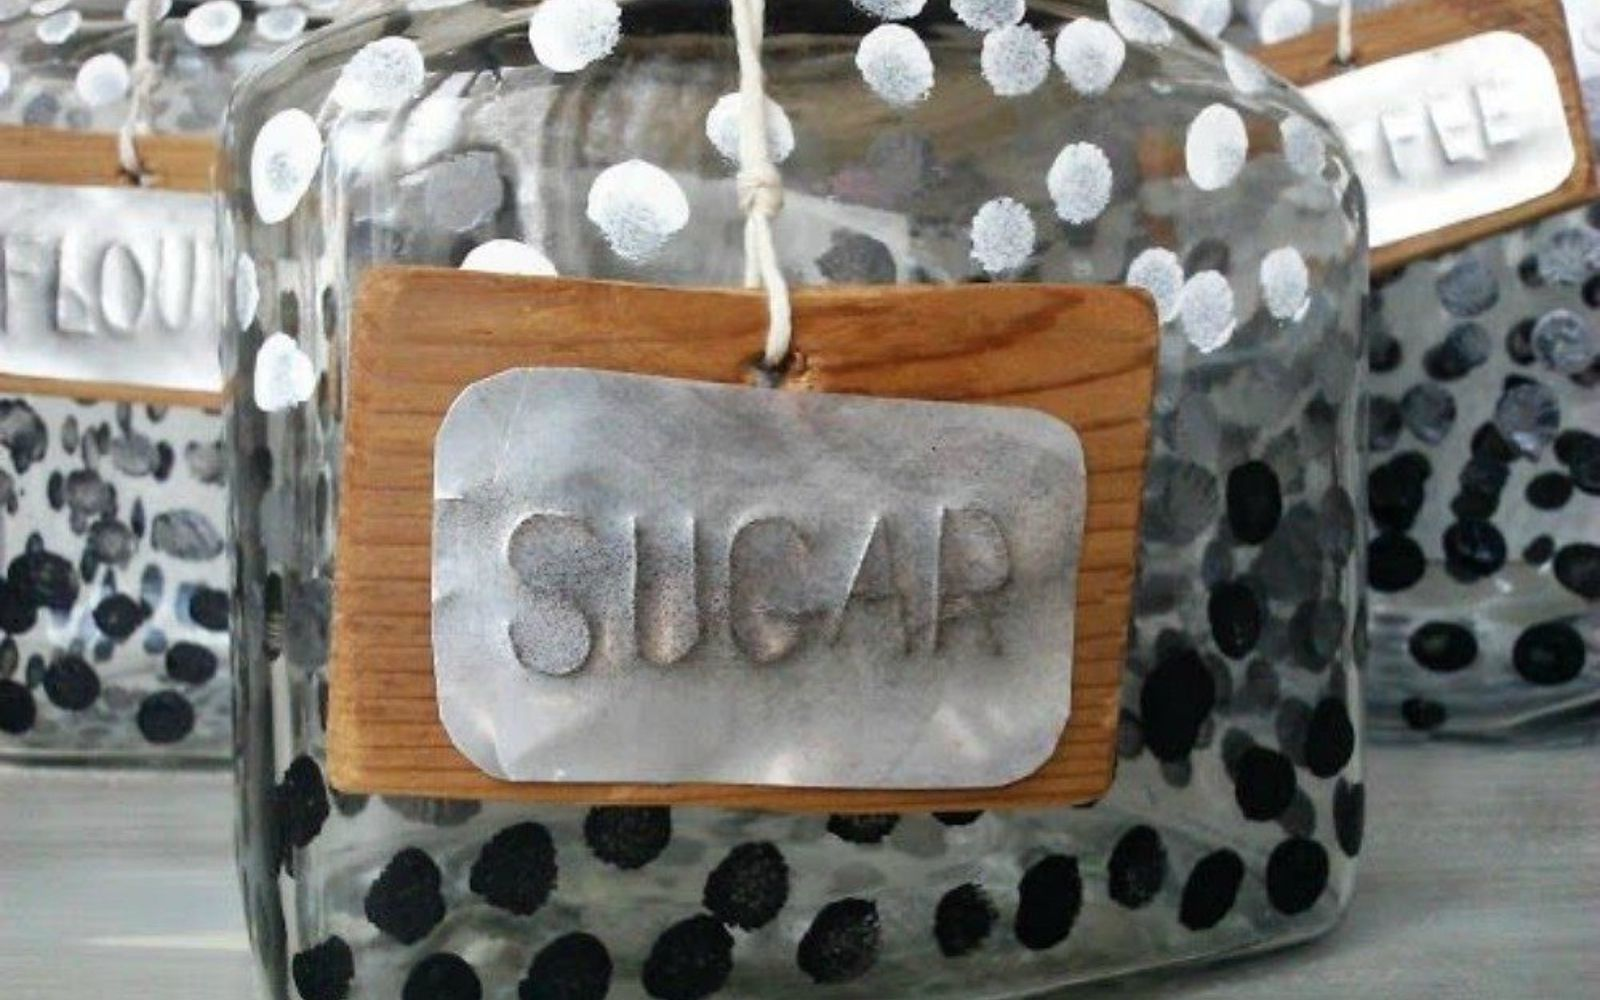 s these cut up soda can decor ideas are perfect for your home, home decor, Emboss them into metal signs